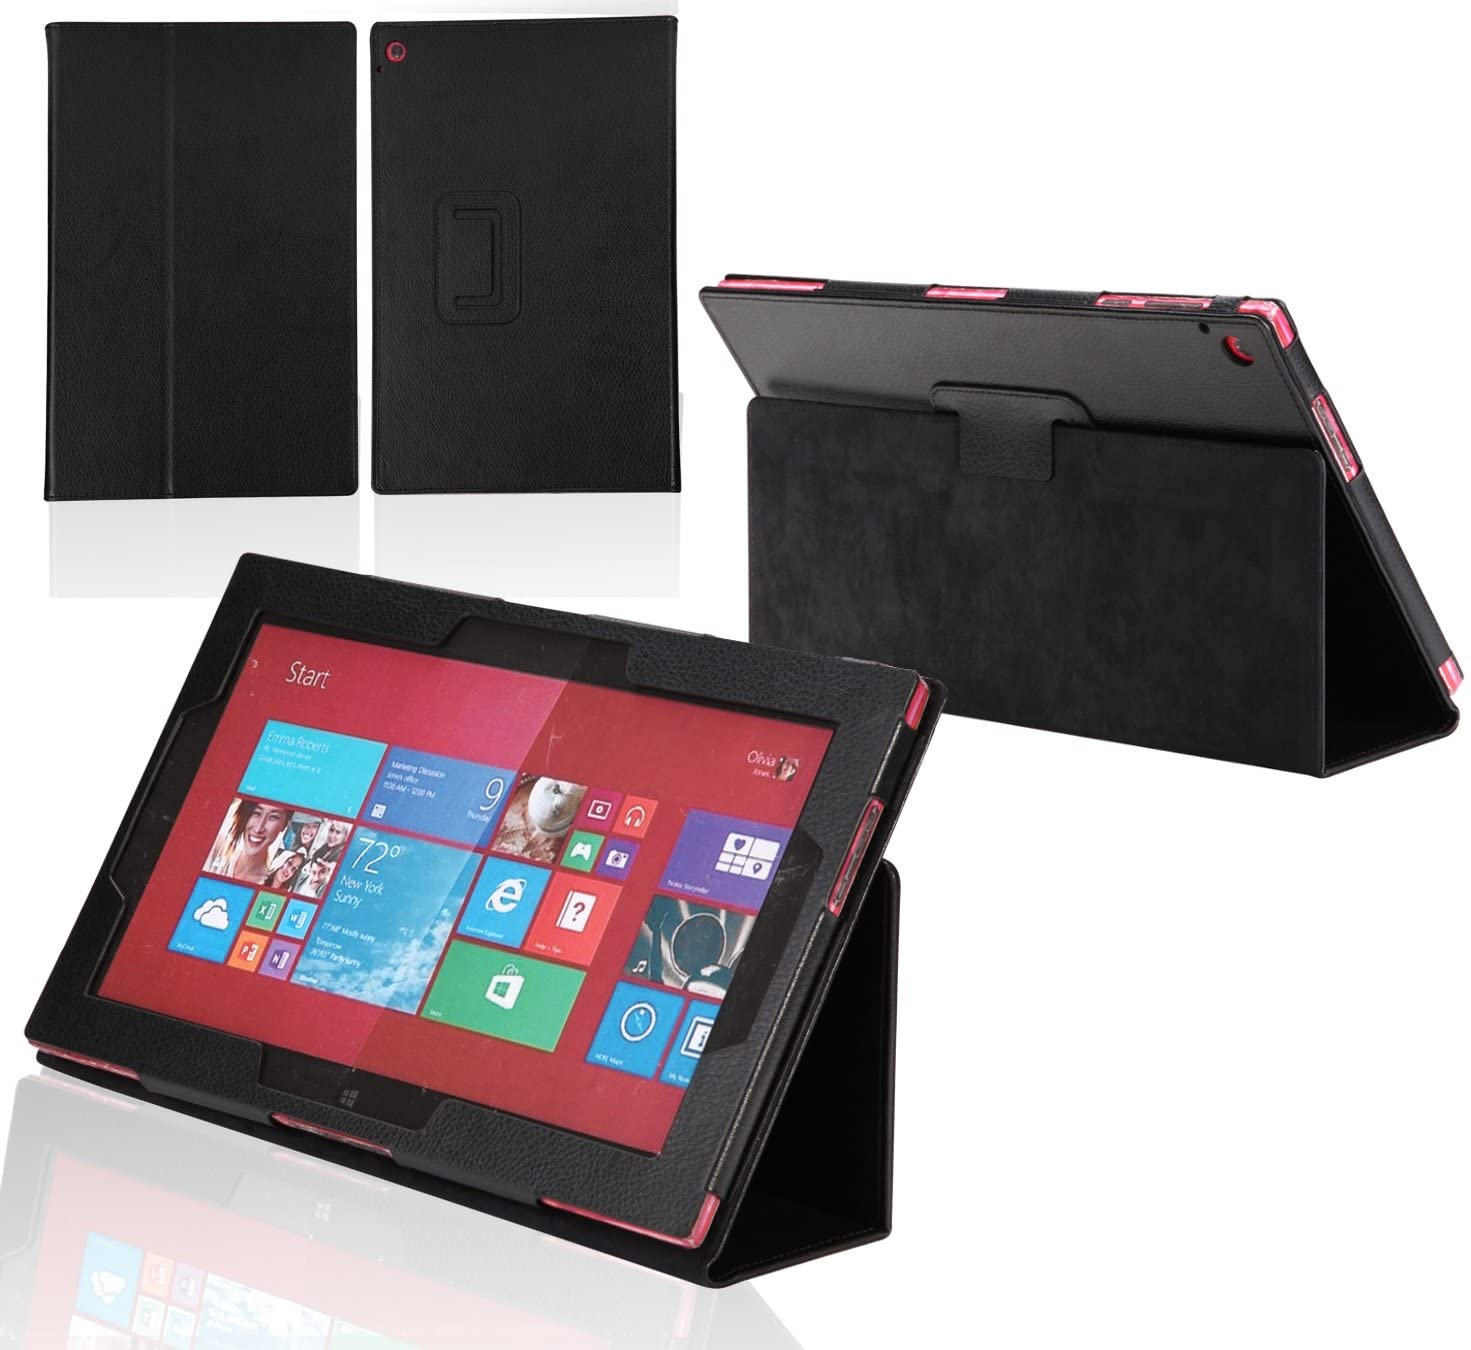 Navitech Black Faux Leather Case Cover with Stand Compatible with The Nokia Lumia 2520 10.1 4G LTE Tablet Windows RT 8.1